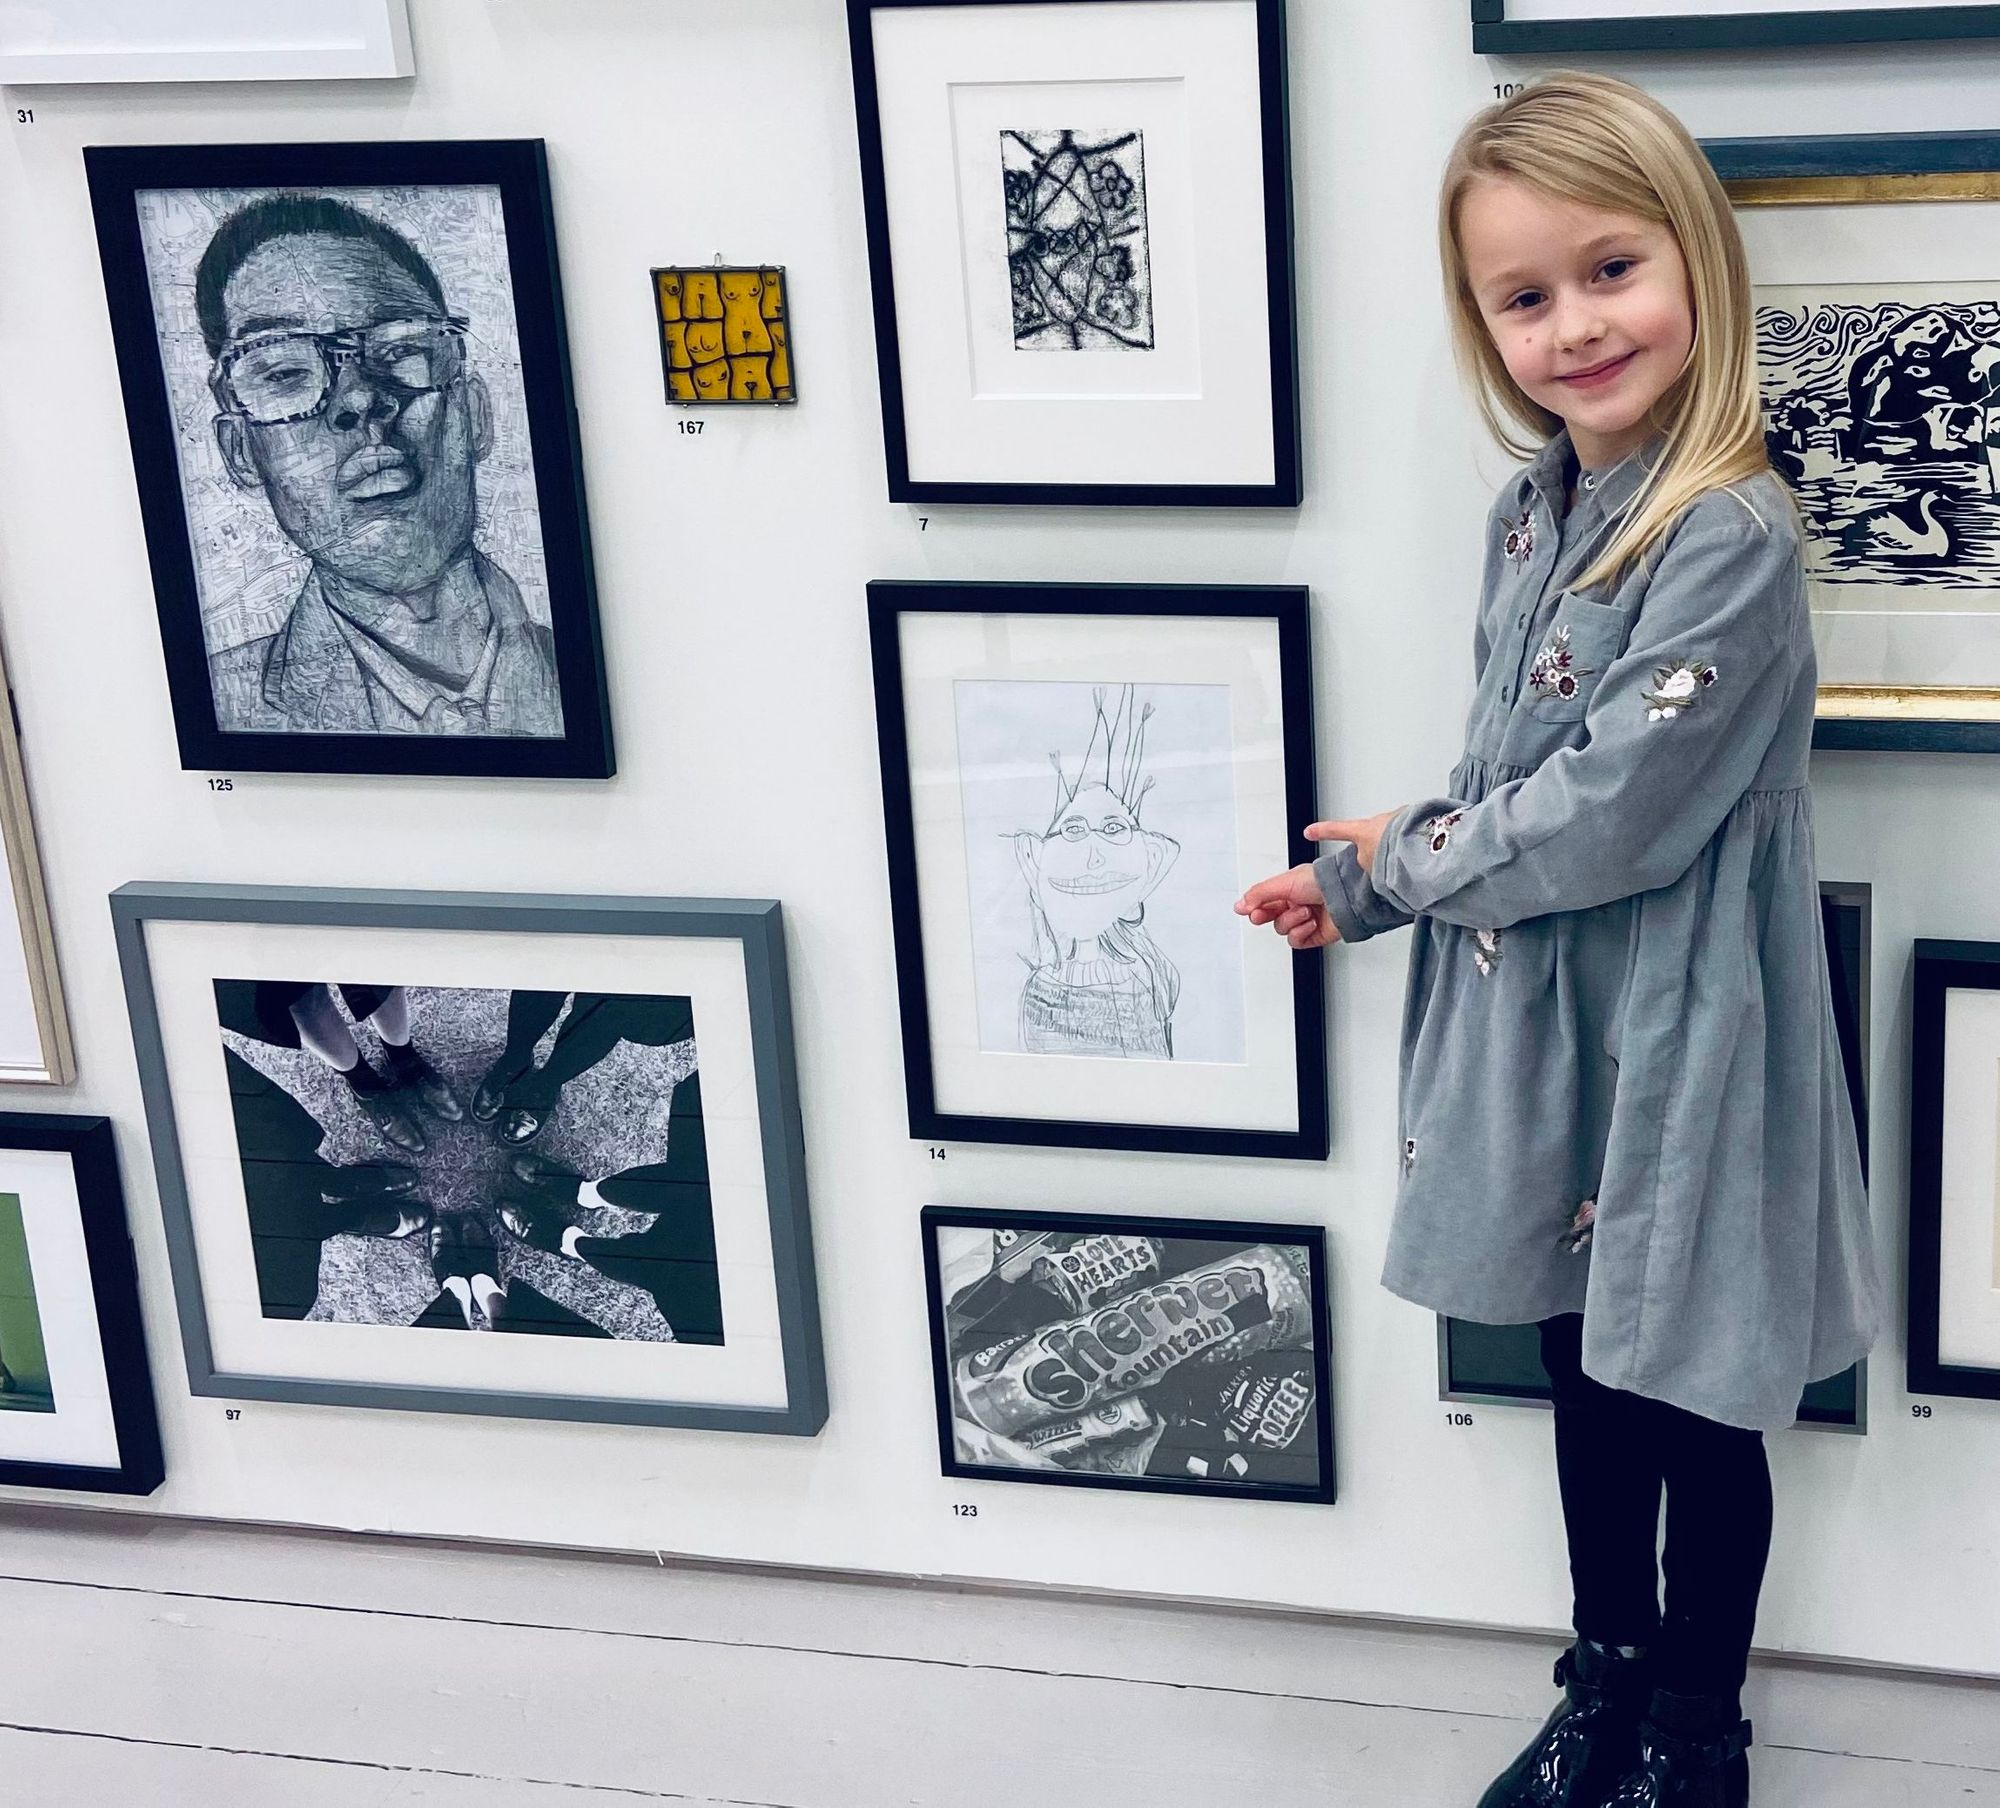 Chloe with her artwork 1